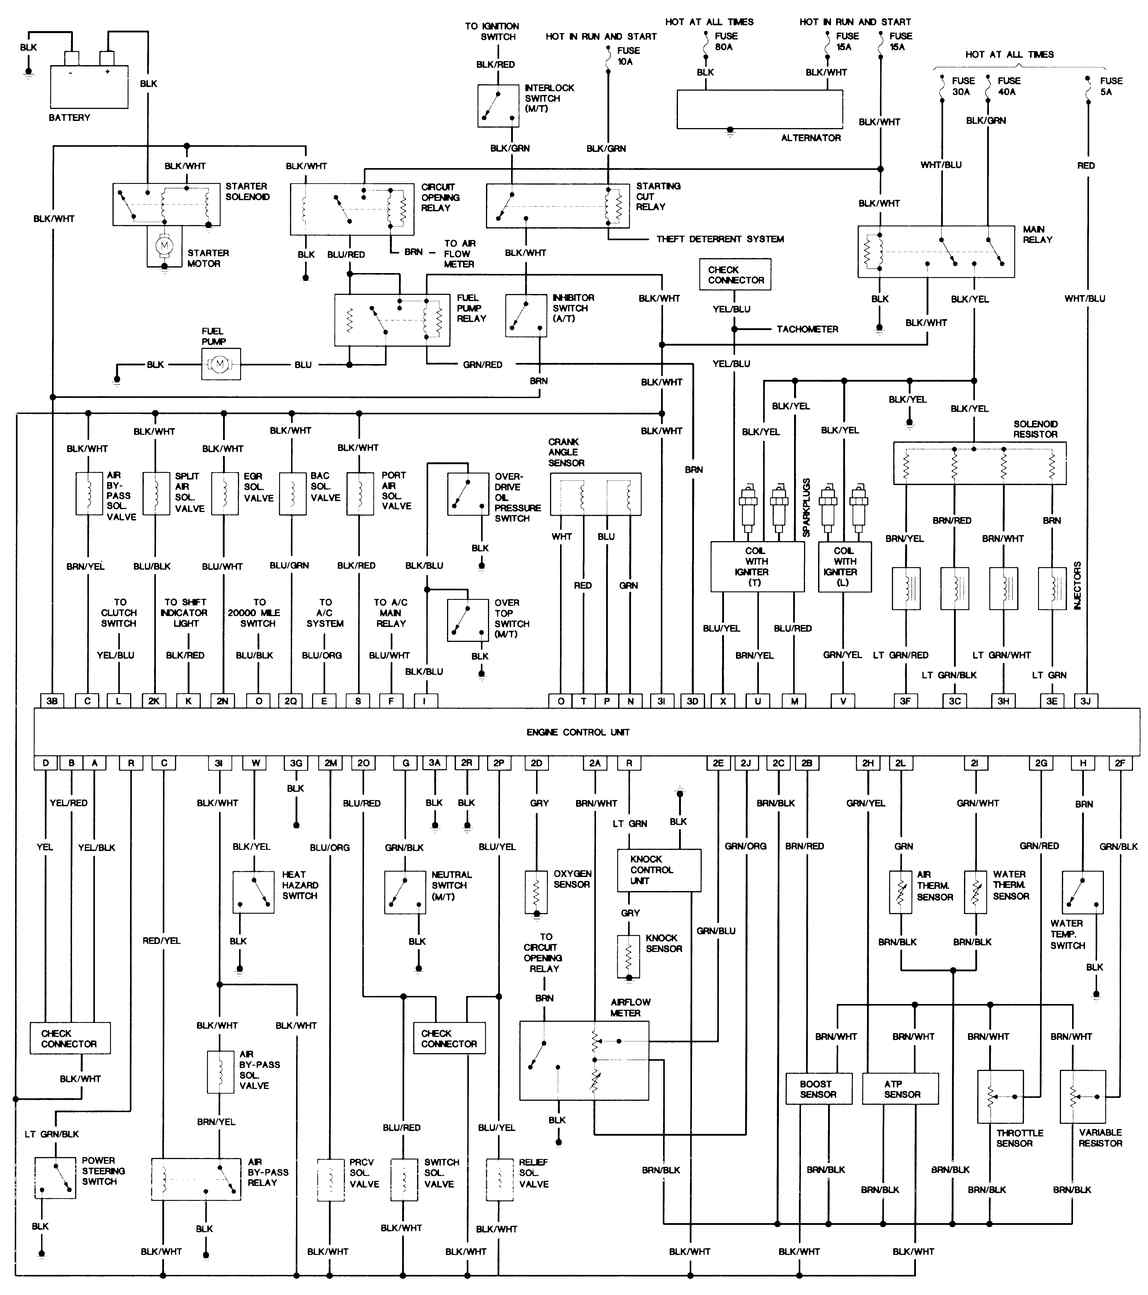 Mazda Rx7 Drawing At Free For Personal Use 2000 Mpv Wiring Diagram 1148x1295 Diagrams